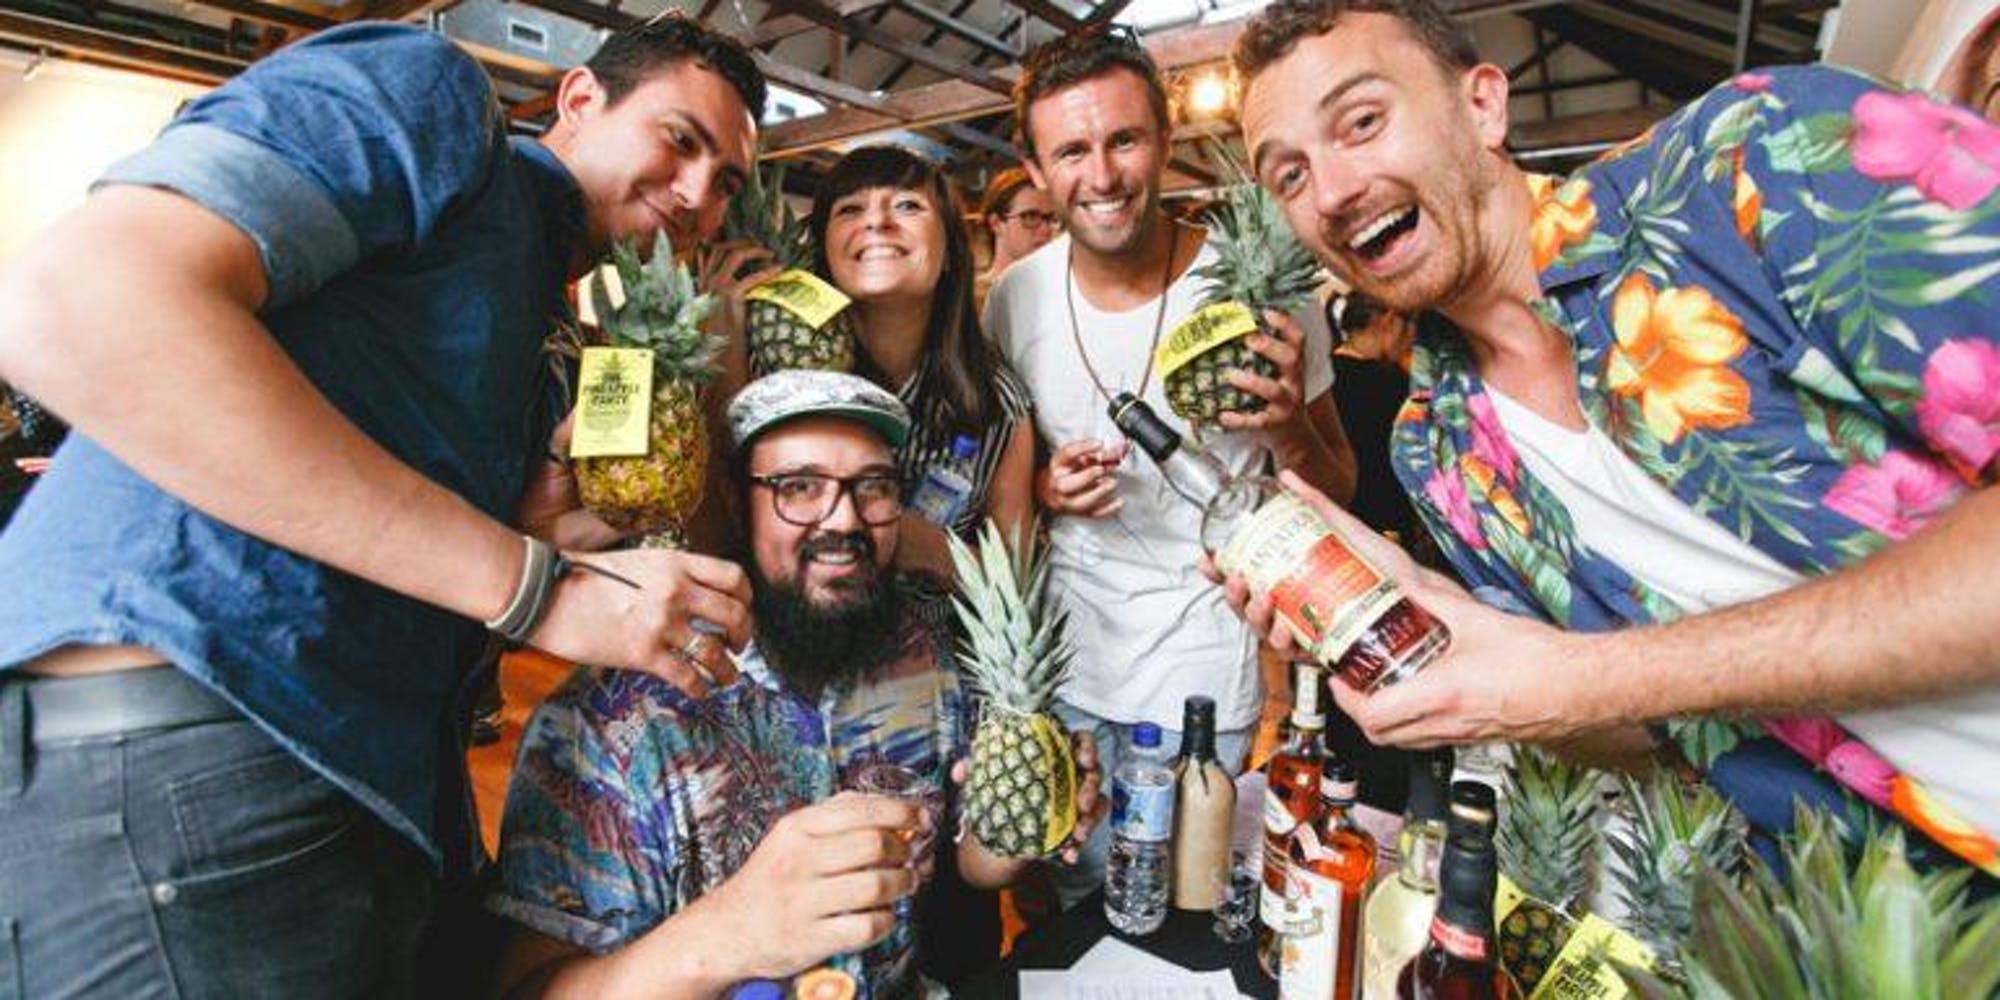 You are currently viewing Indie Spirits Tasting Melbourne